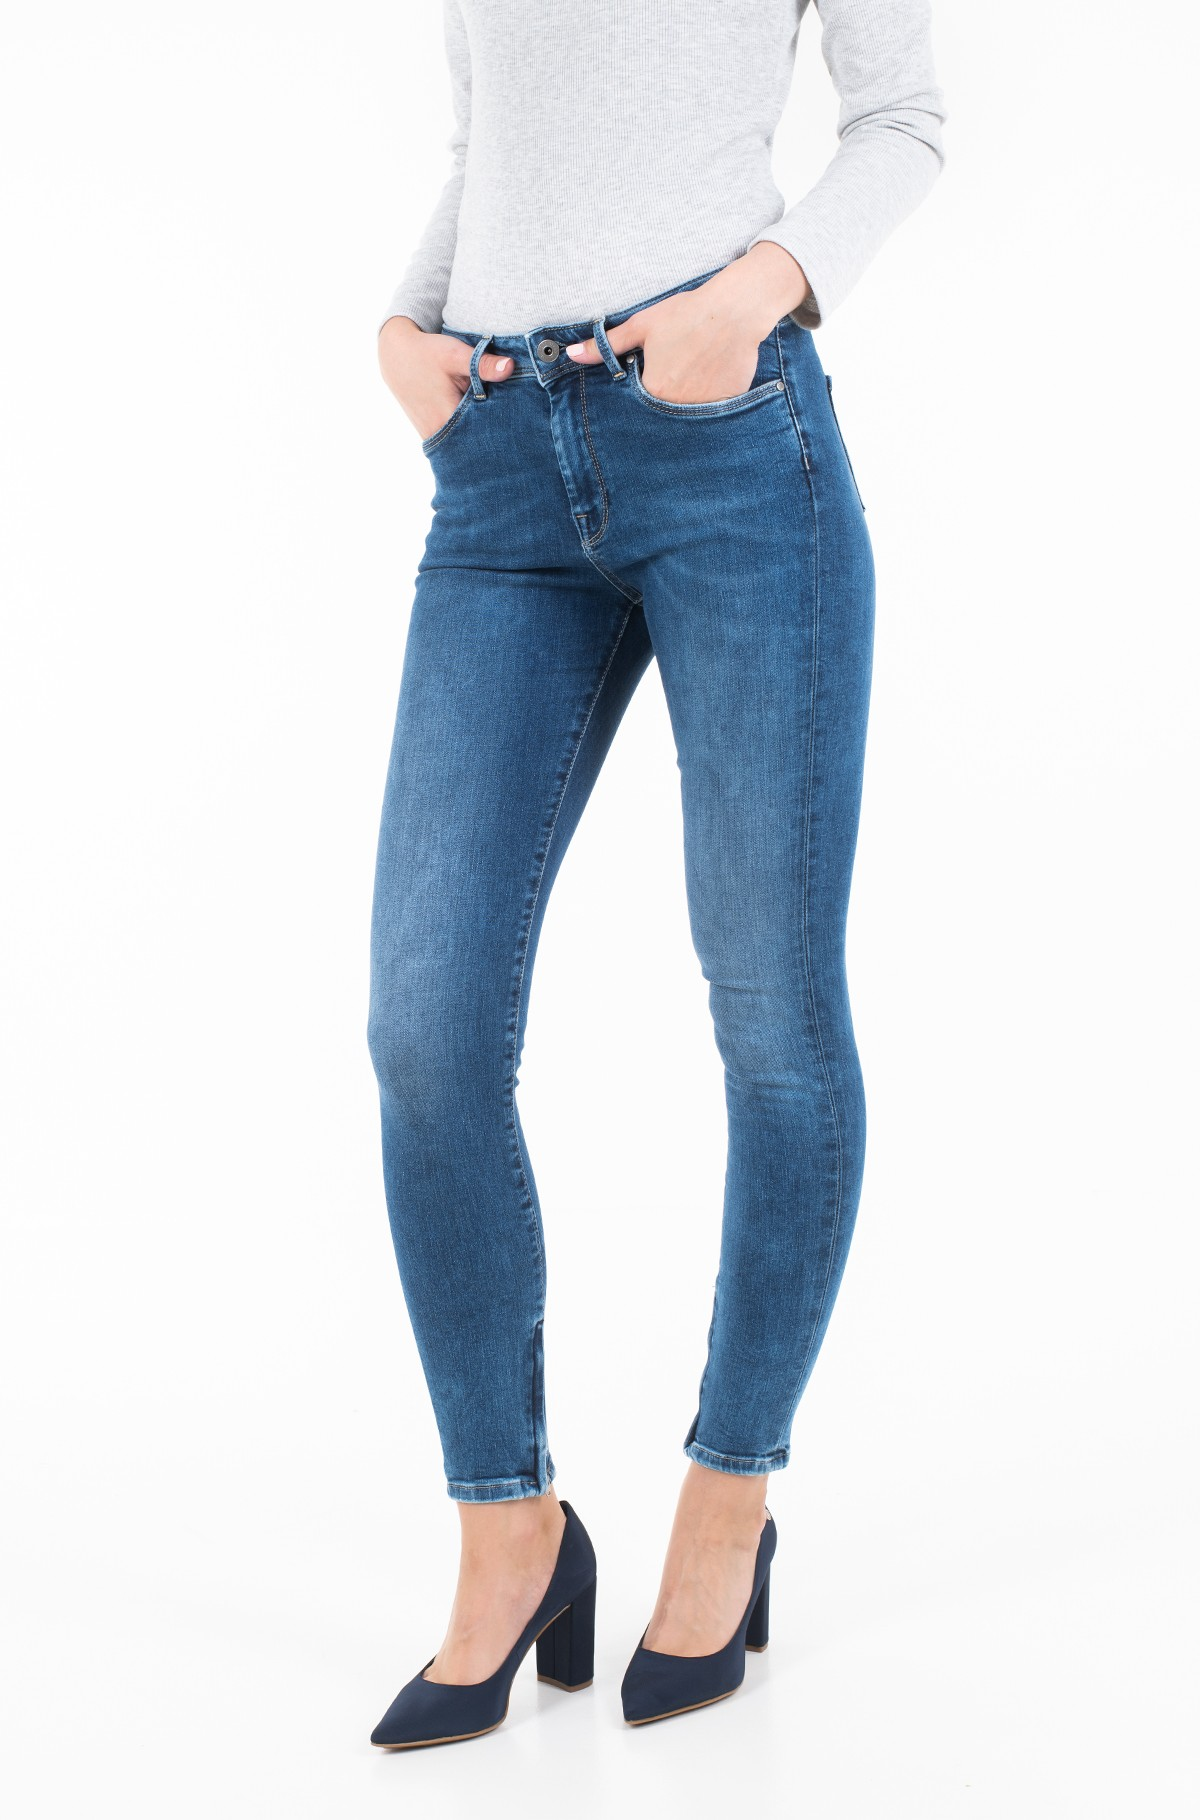 Jeans CHER HIGH/PL203384GS1-full-1